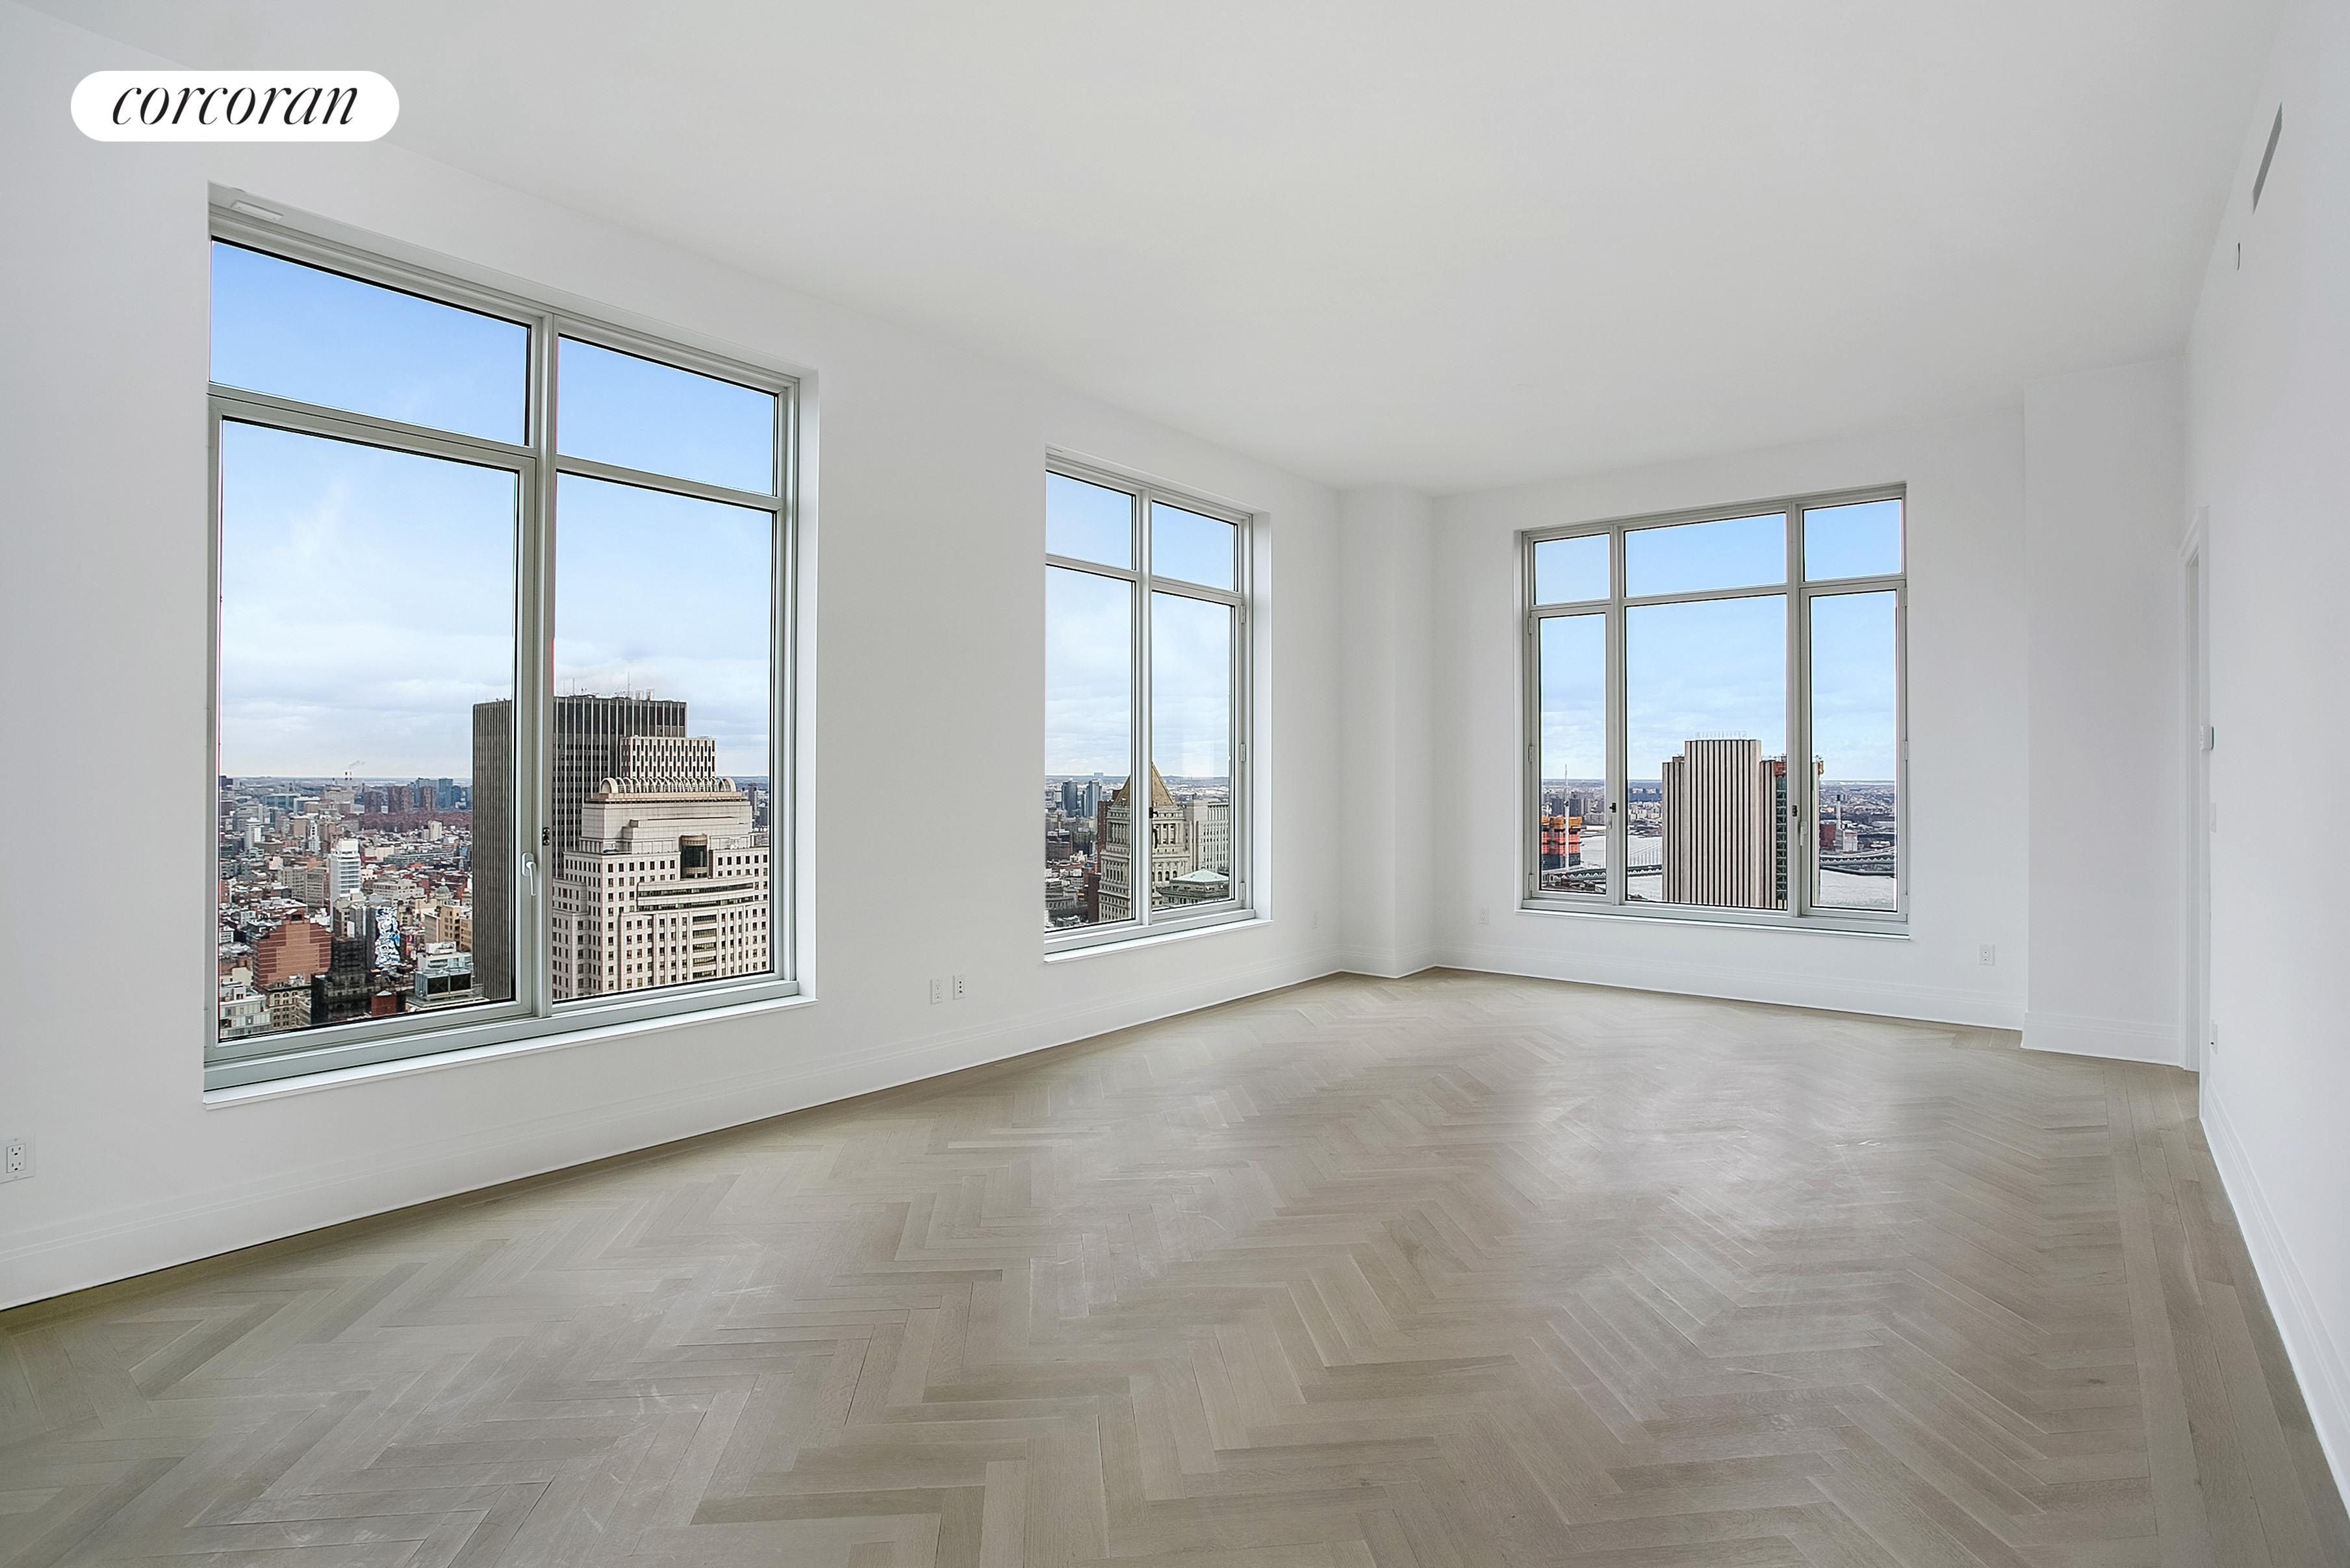 NO BROKER'S FEE! This 3 Bedroom 3.5 Bathroom residence sits on the northeast corner enjoying sweeping views of the Midtown skyline and East River. A windowed Eat-In Kitchen complements the Living/Dining Room. The Master Bedroom Suite , generous closet space, and a 5-fixture bathroom. Welcome to 5-star living at 30 Park Place, Four Seasons Private Residences New York, Downtown. Developed by visionary Silverstein Properties, Inc., masterfully designed by Robert A.M. Stern Architects, and serviced by legendary Four Seasons Hotels and Resorts. With residences beginning on the 39th floor, the sweeping views are unparalleled. Residents may enjoy access to Four Seasons Hotel amenities including a spa and salon facilities, 75' swimming pool, attended parking garage, restaurant, bar and lounge, ballroom facilities, and meeting rooms, as well as a comprehensive suite of a la carte services. The 38th floor is devoted to private residential amenities including a fitness center and yoga studio, private dining room, conservatory and lounge with access to loggias, Roto-designed kid's playroom, and screening room. Interior finishes include solid oak wood flooring with herringbone pattern in the formal rooms, Bilotta rift-cut oak kitchen cabinetry, Gaggenau appliances, and marble bathrooms with Robert A.M. Stern custom-designed vanities.